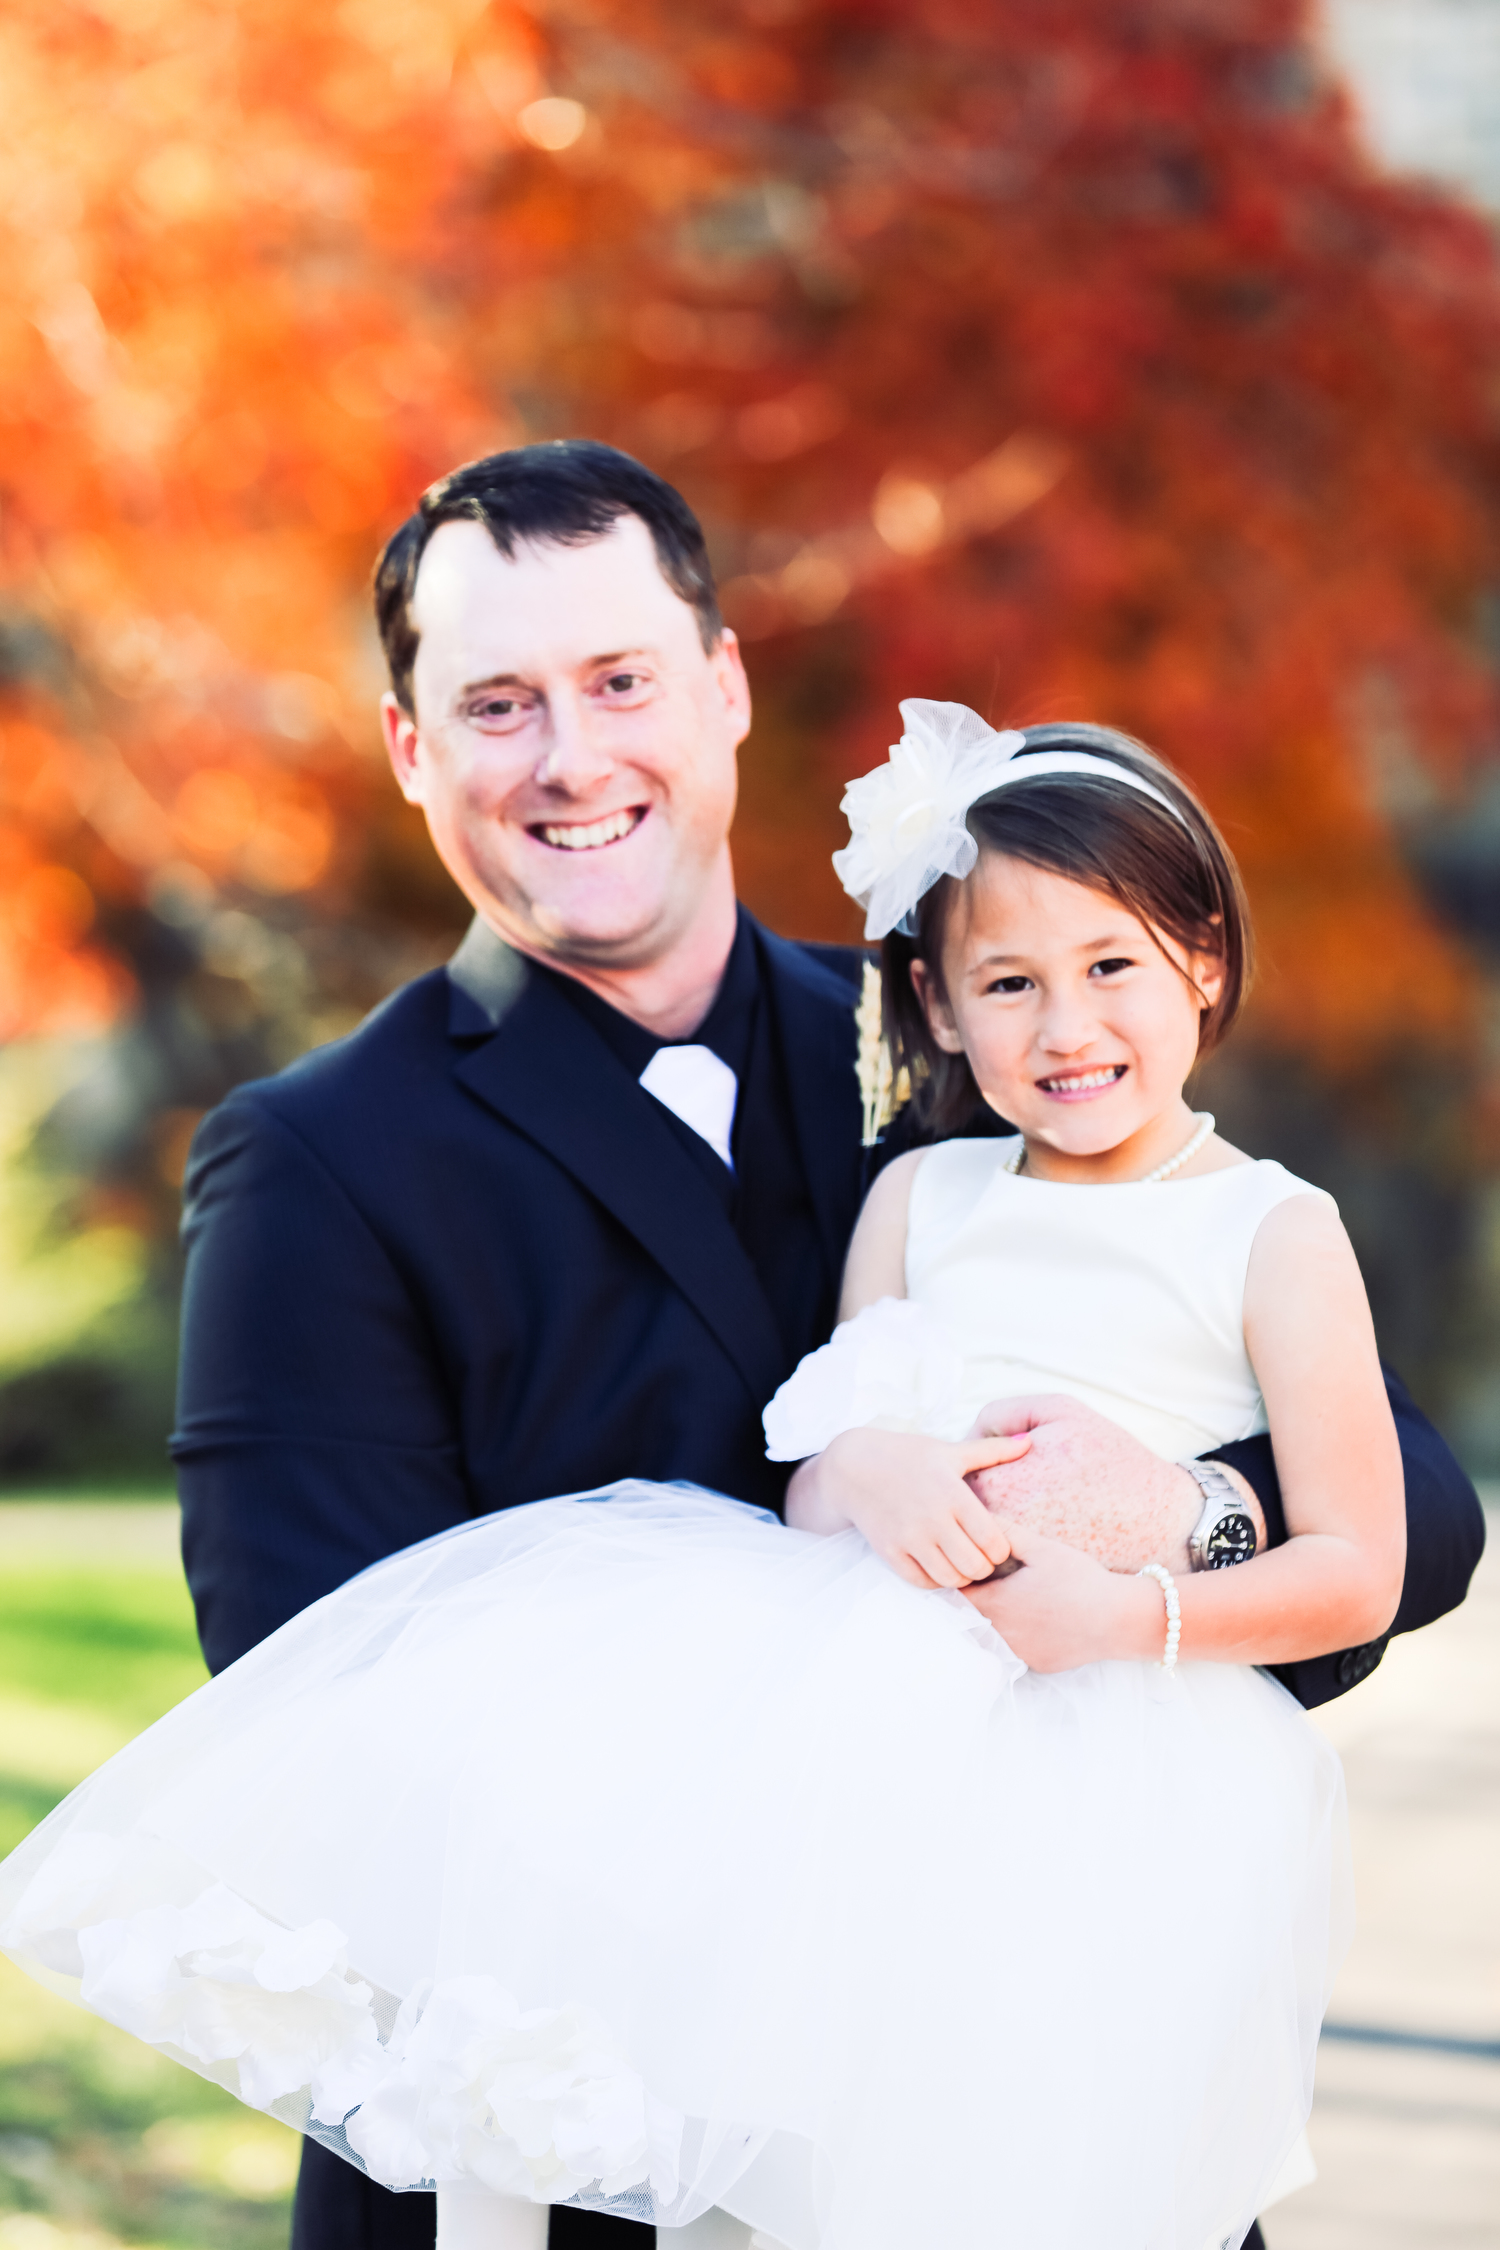 Sharai_Siemens_Photography_Wedding_Wilsons27.jpg